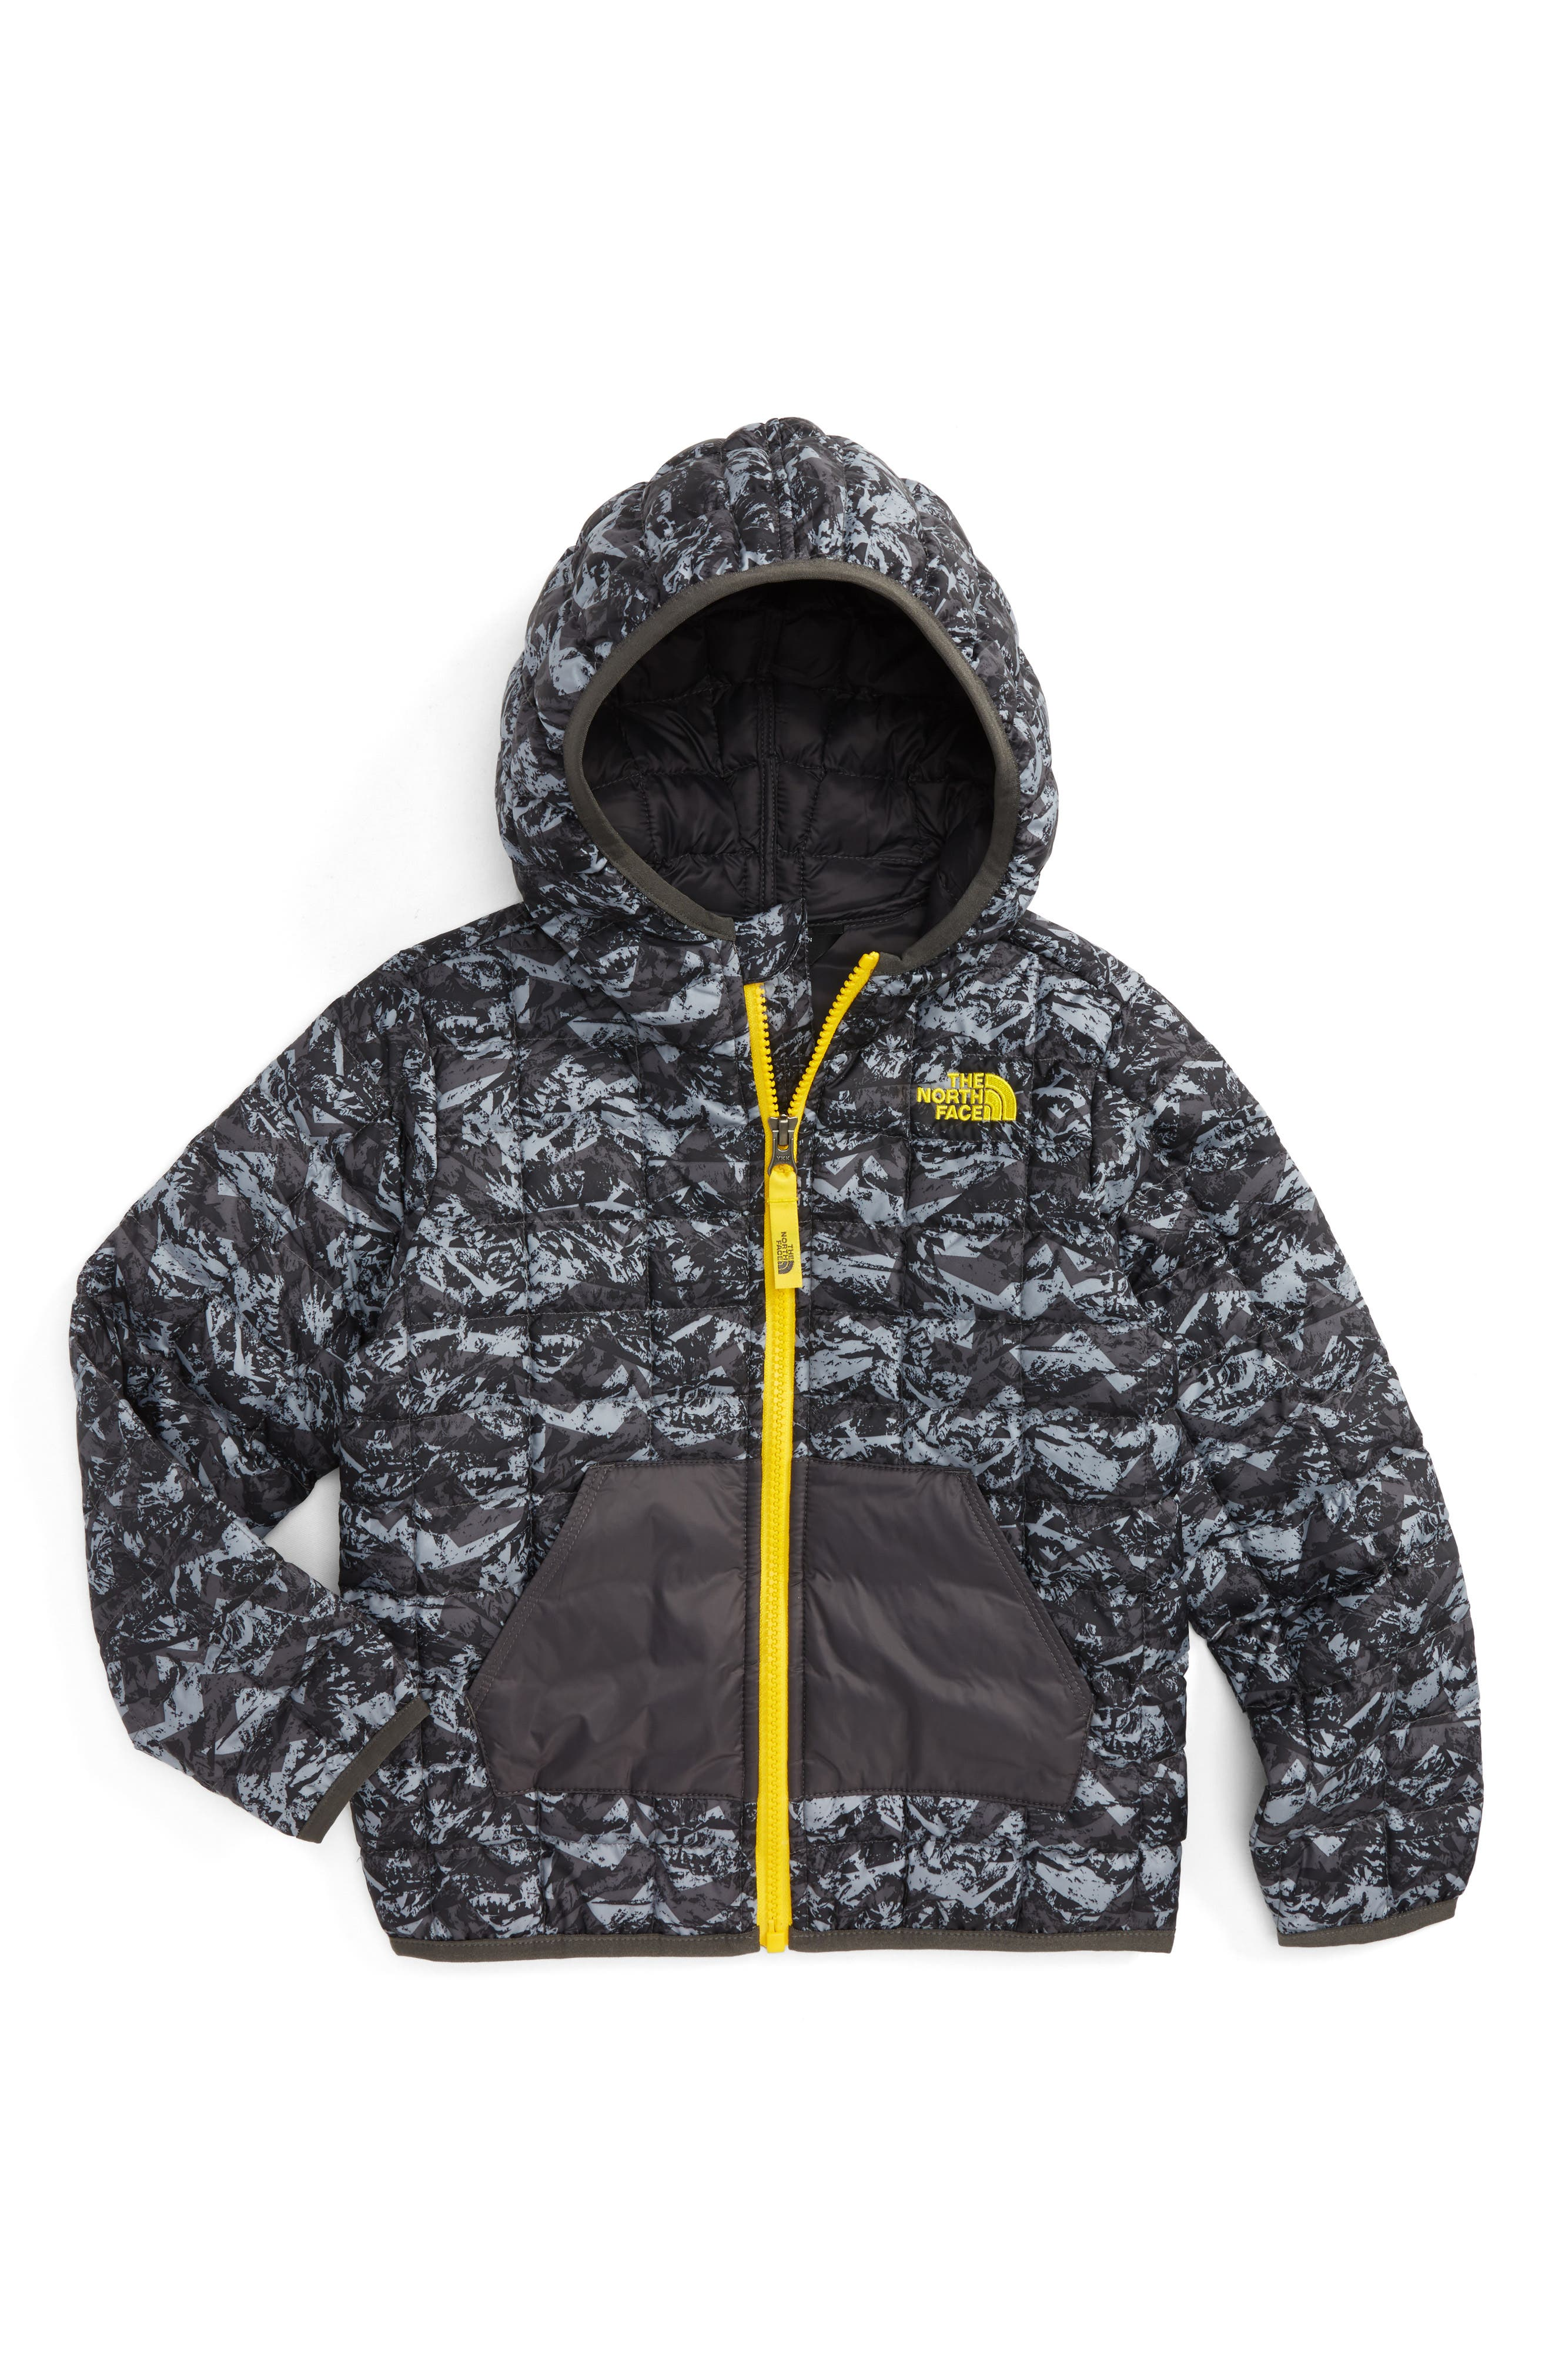 Alternate Image 1 Selected - The North Face ThermoBall™ PrimaLoft® Hoodie Jacket (Toddler Boys & Little Boys)